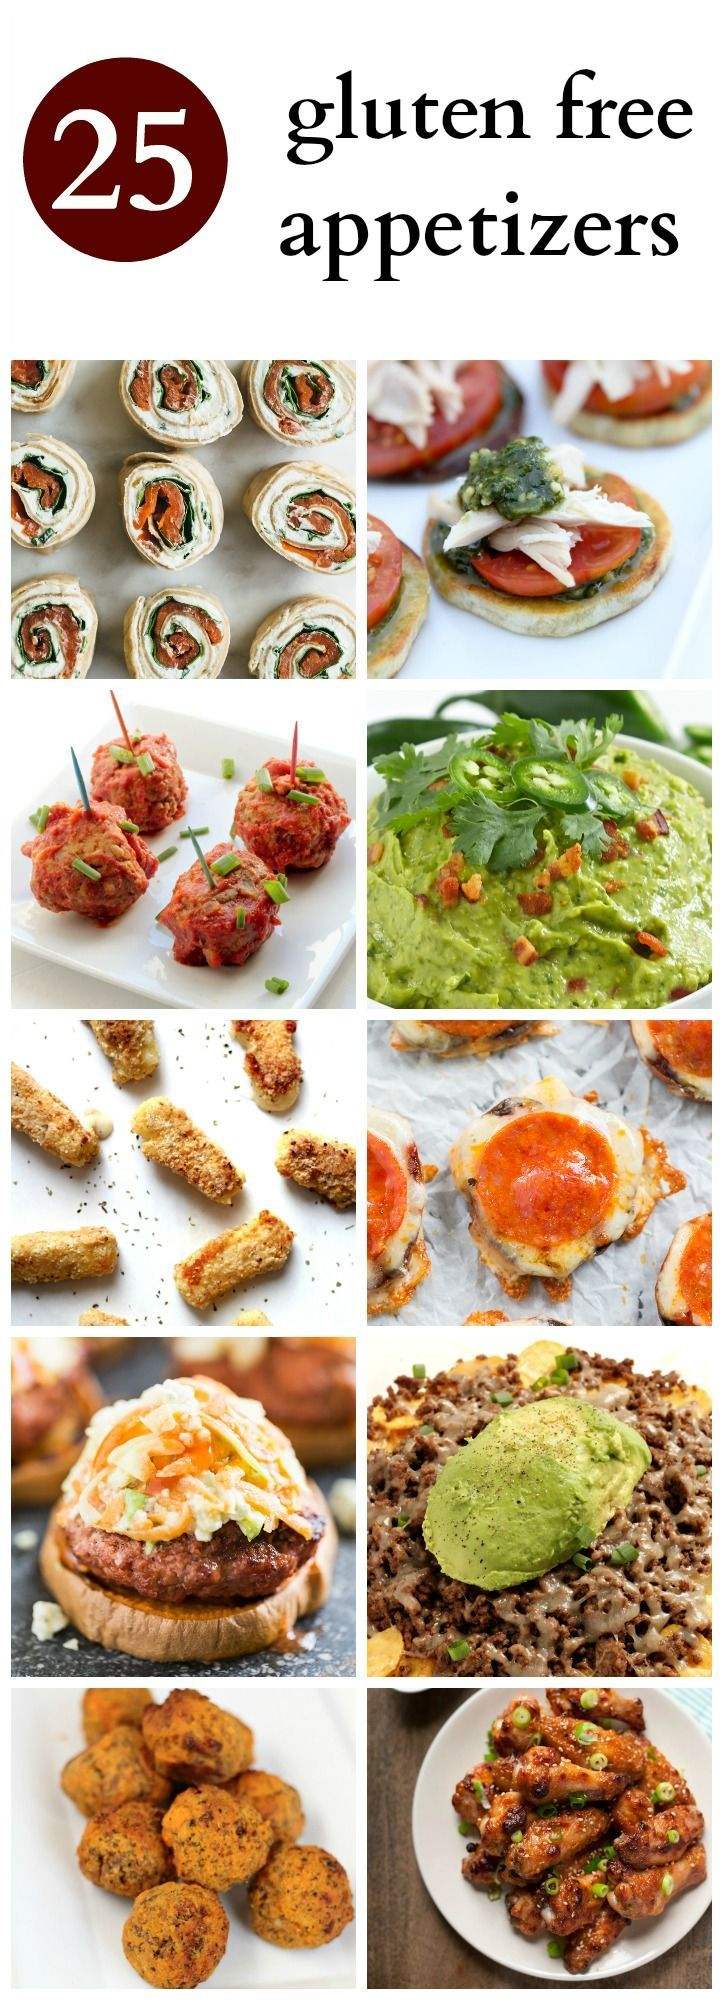 gluten free appetizers 25 recipes gluten free snacks